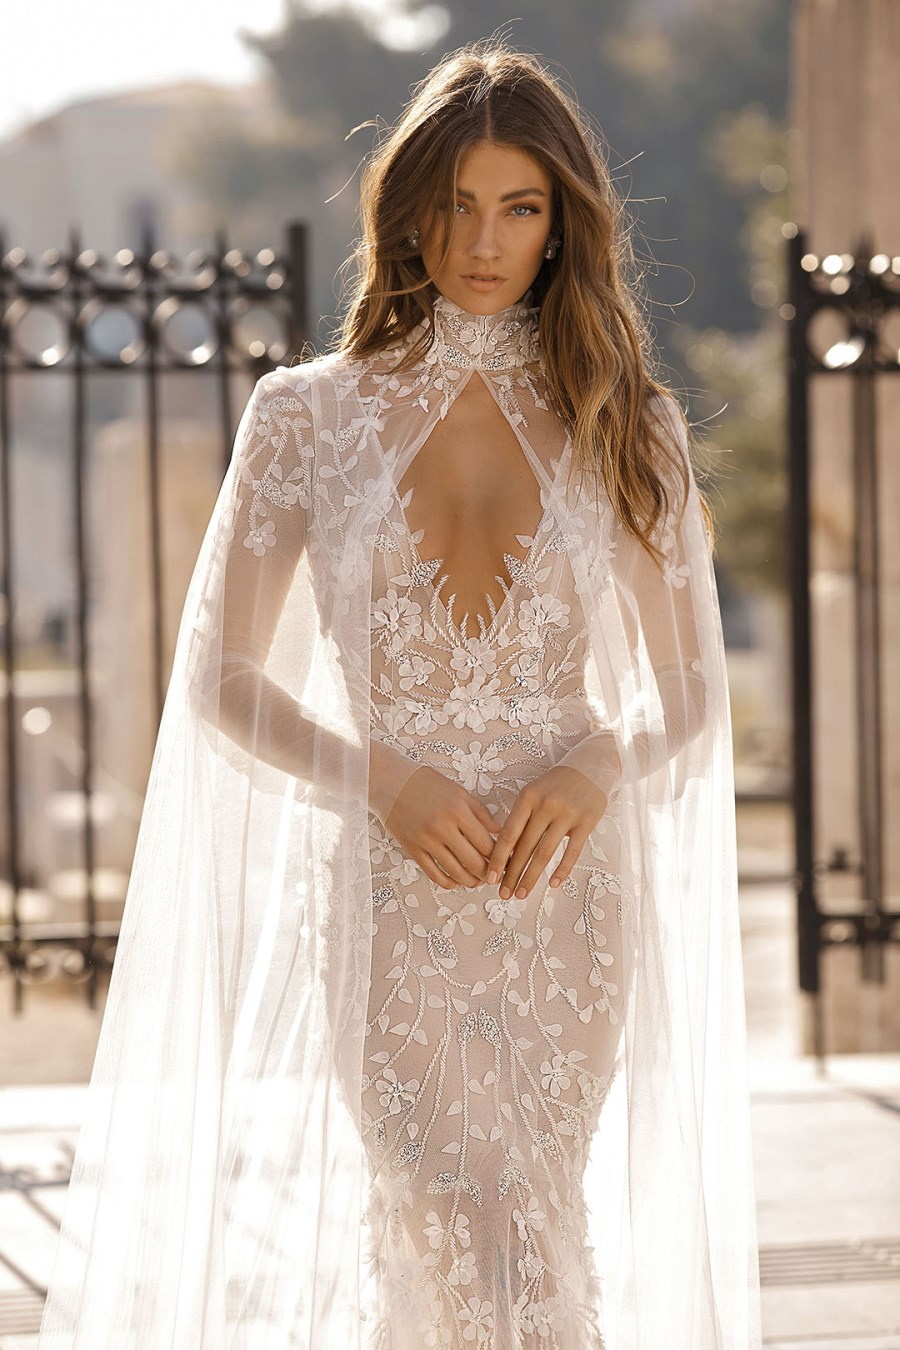 berta-wedding-dress-2019-1 (17)_1